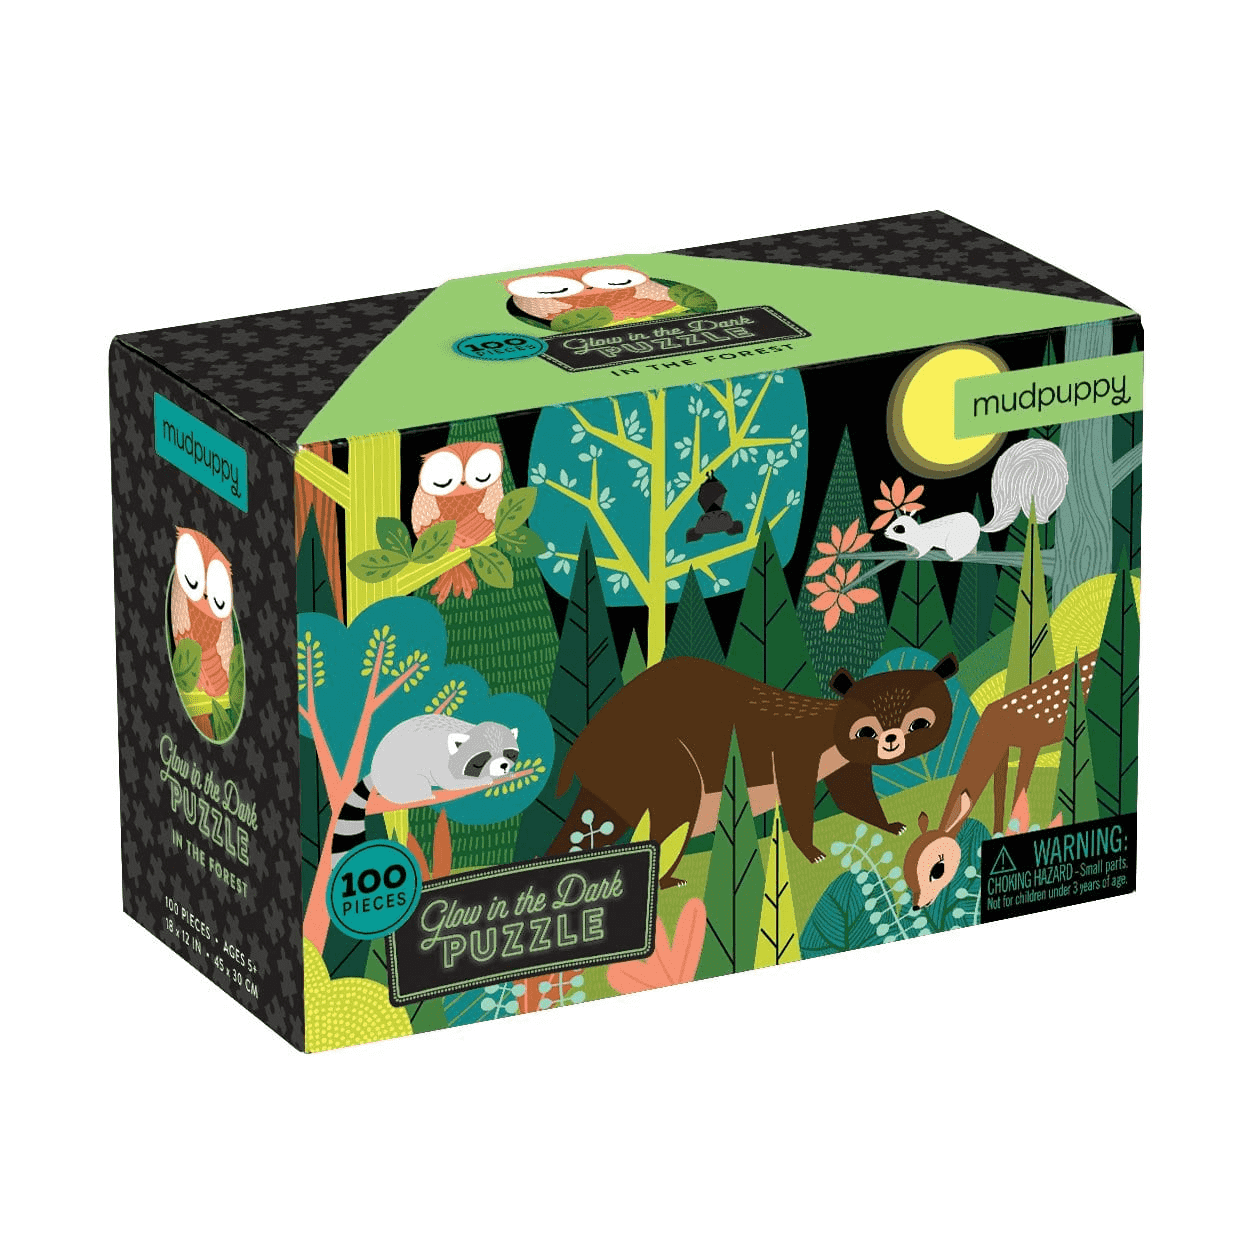 Mudpuppy Glow Puzzle Mudpuppy Puzzles Forest at Little Earth Nest Eco Shop